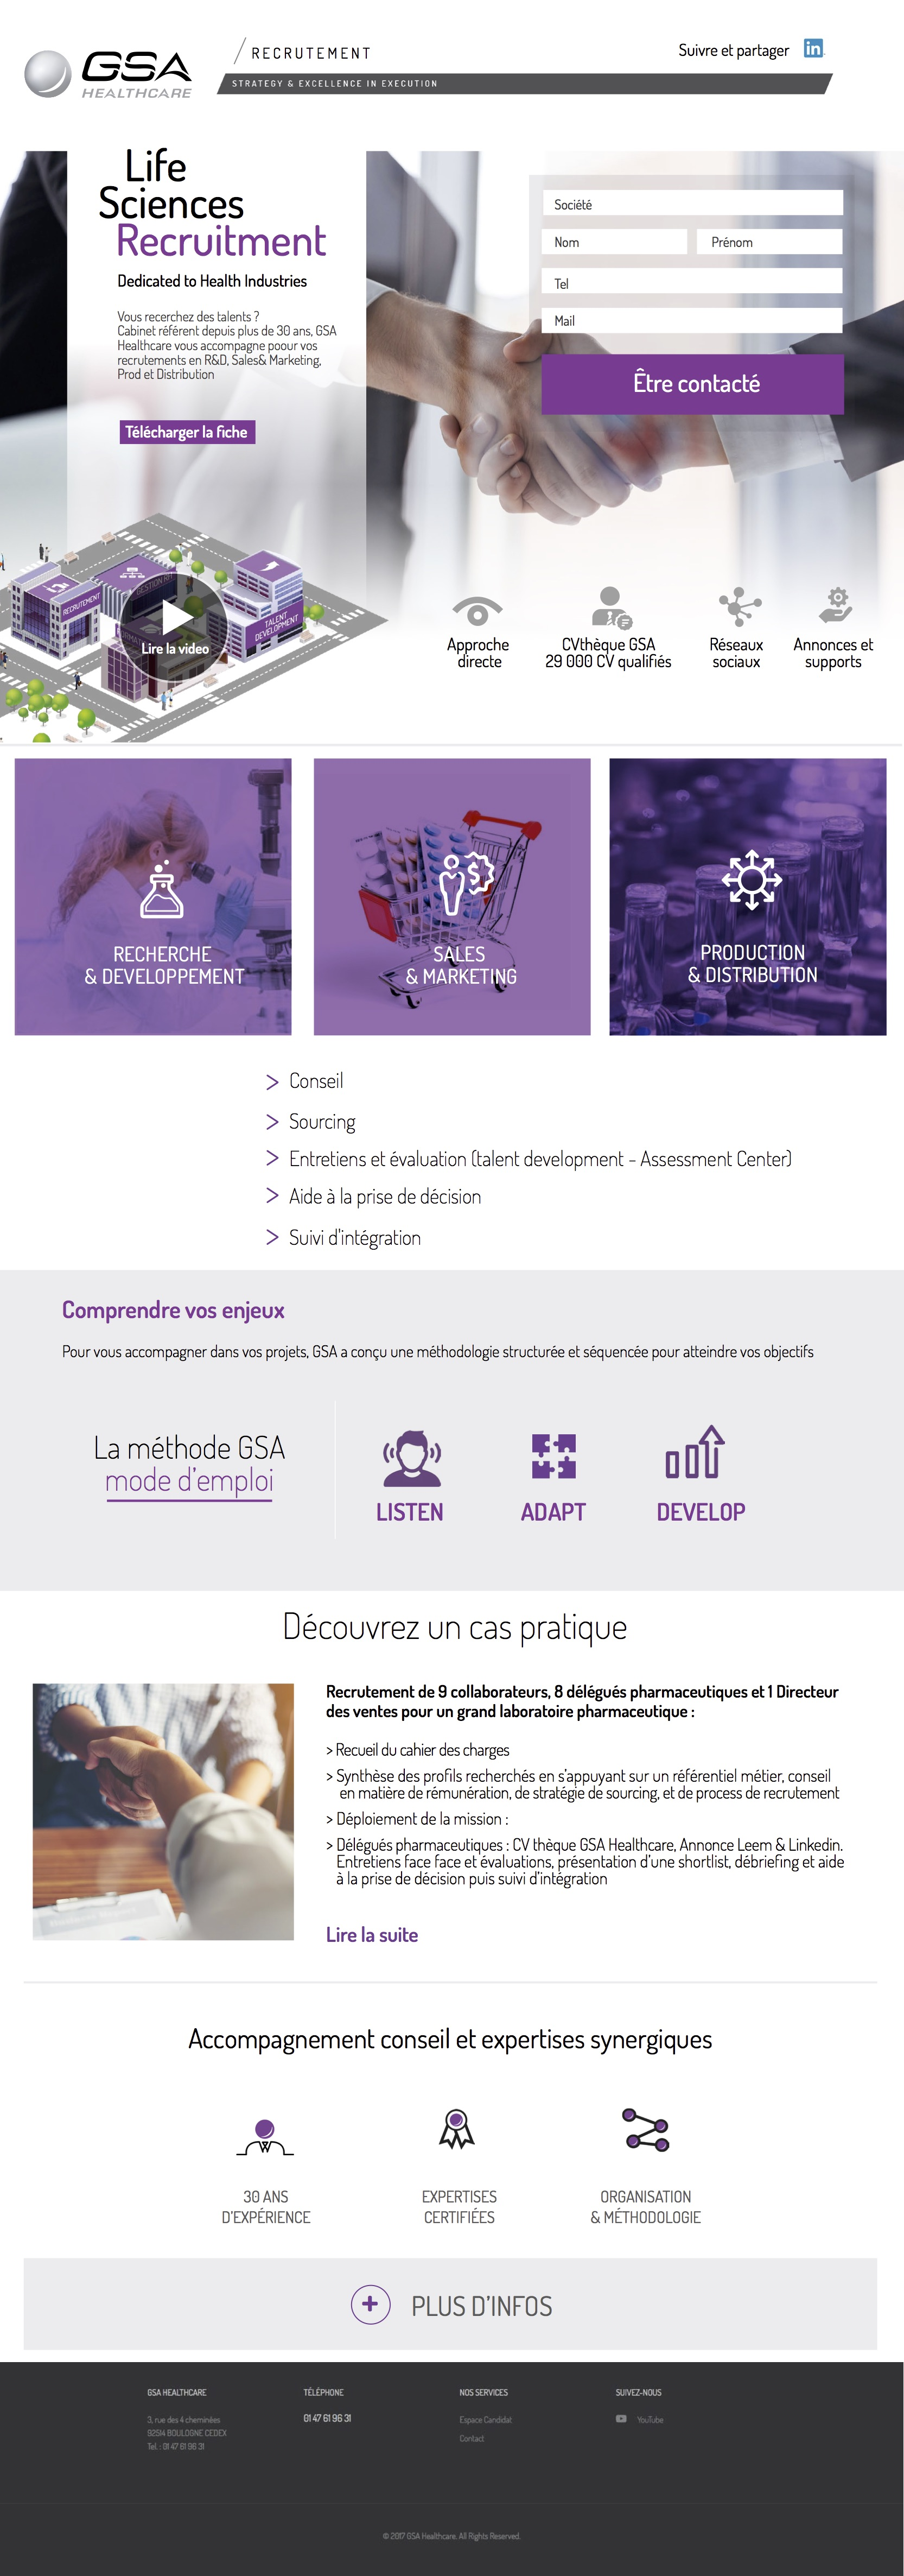 GSA-Landing-Page-Hr-Solutions-idetop